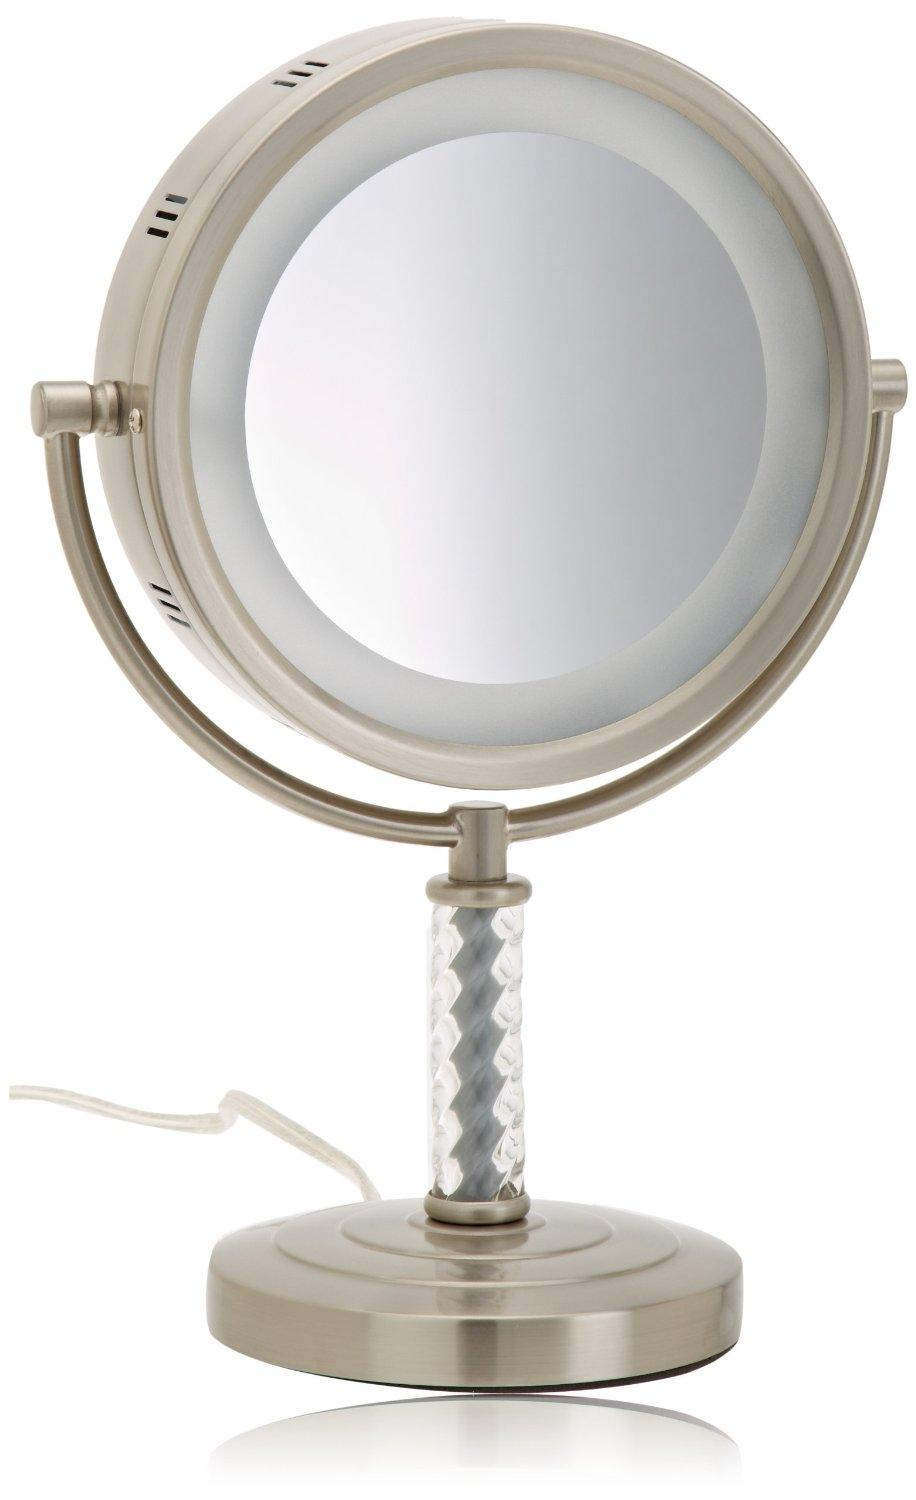 jerdon hl856mnc 8 inch halo lighted vanity mirror with 6x magnification nickel. Black Bedroom Furniture Sets. Home Design Ideas